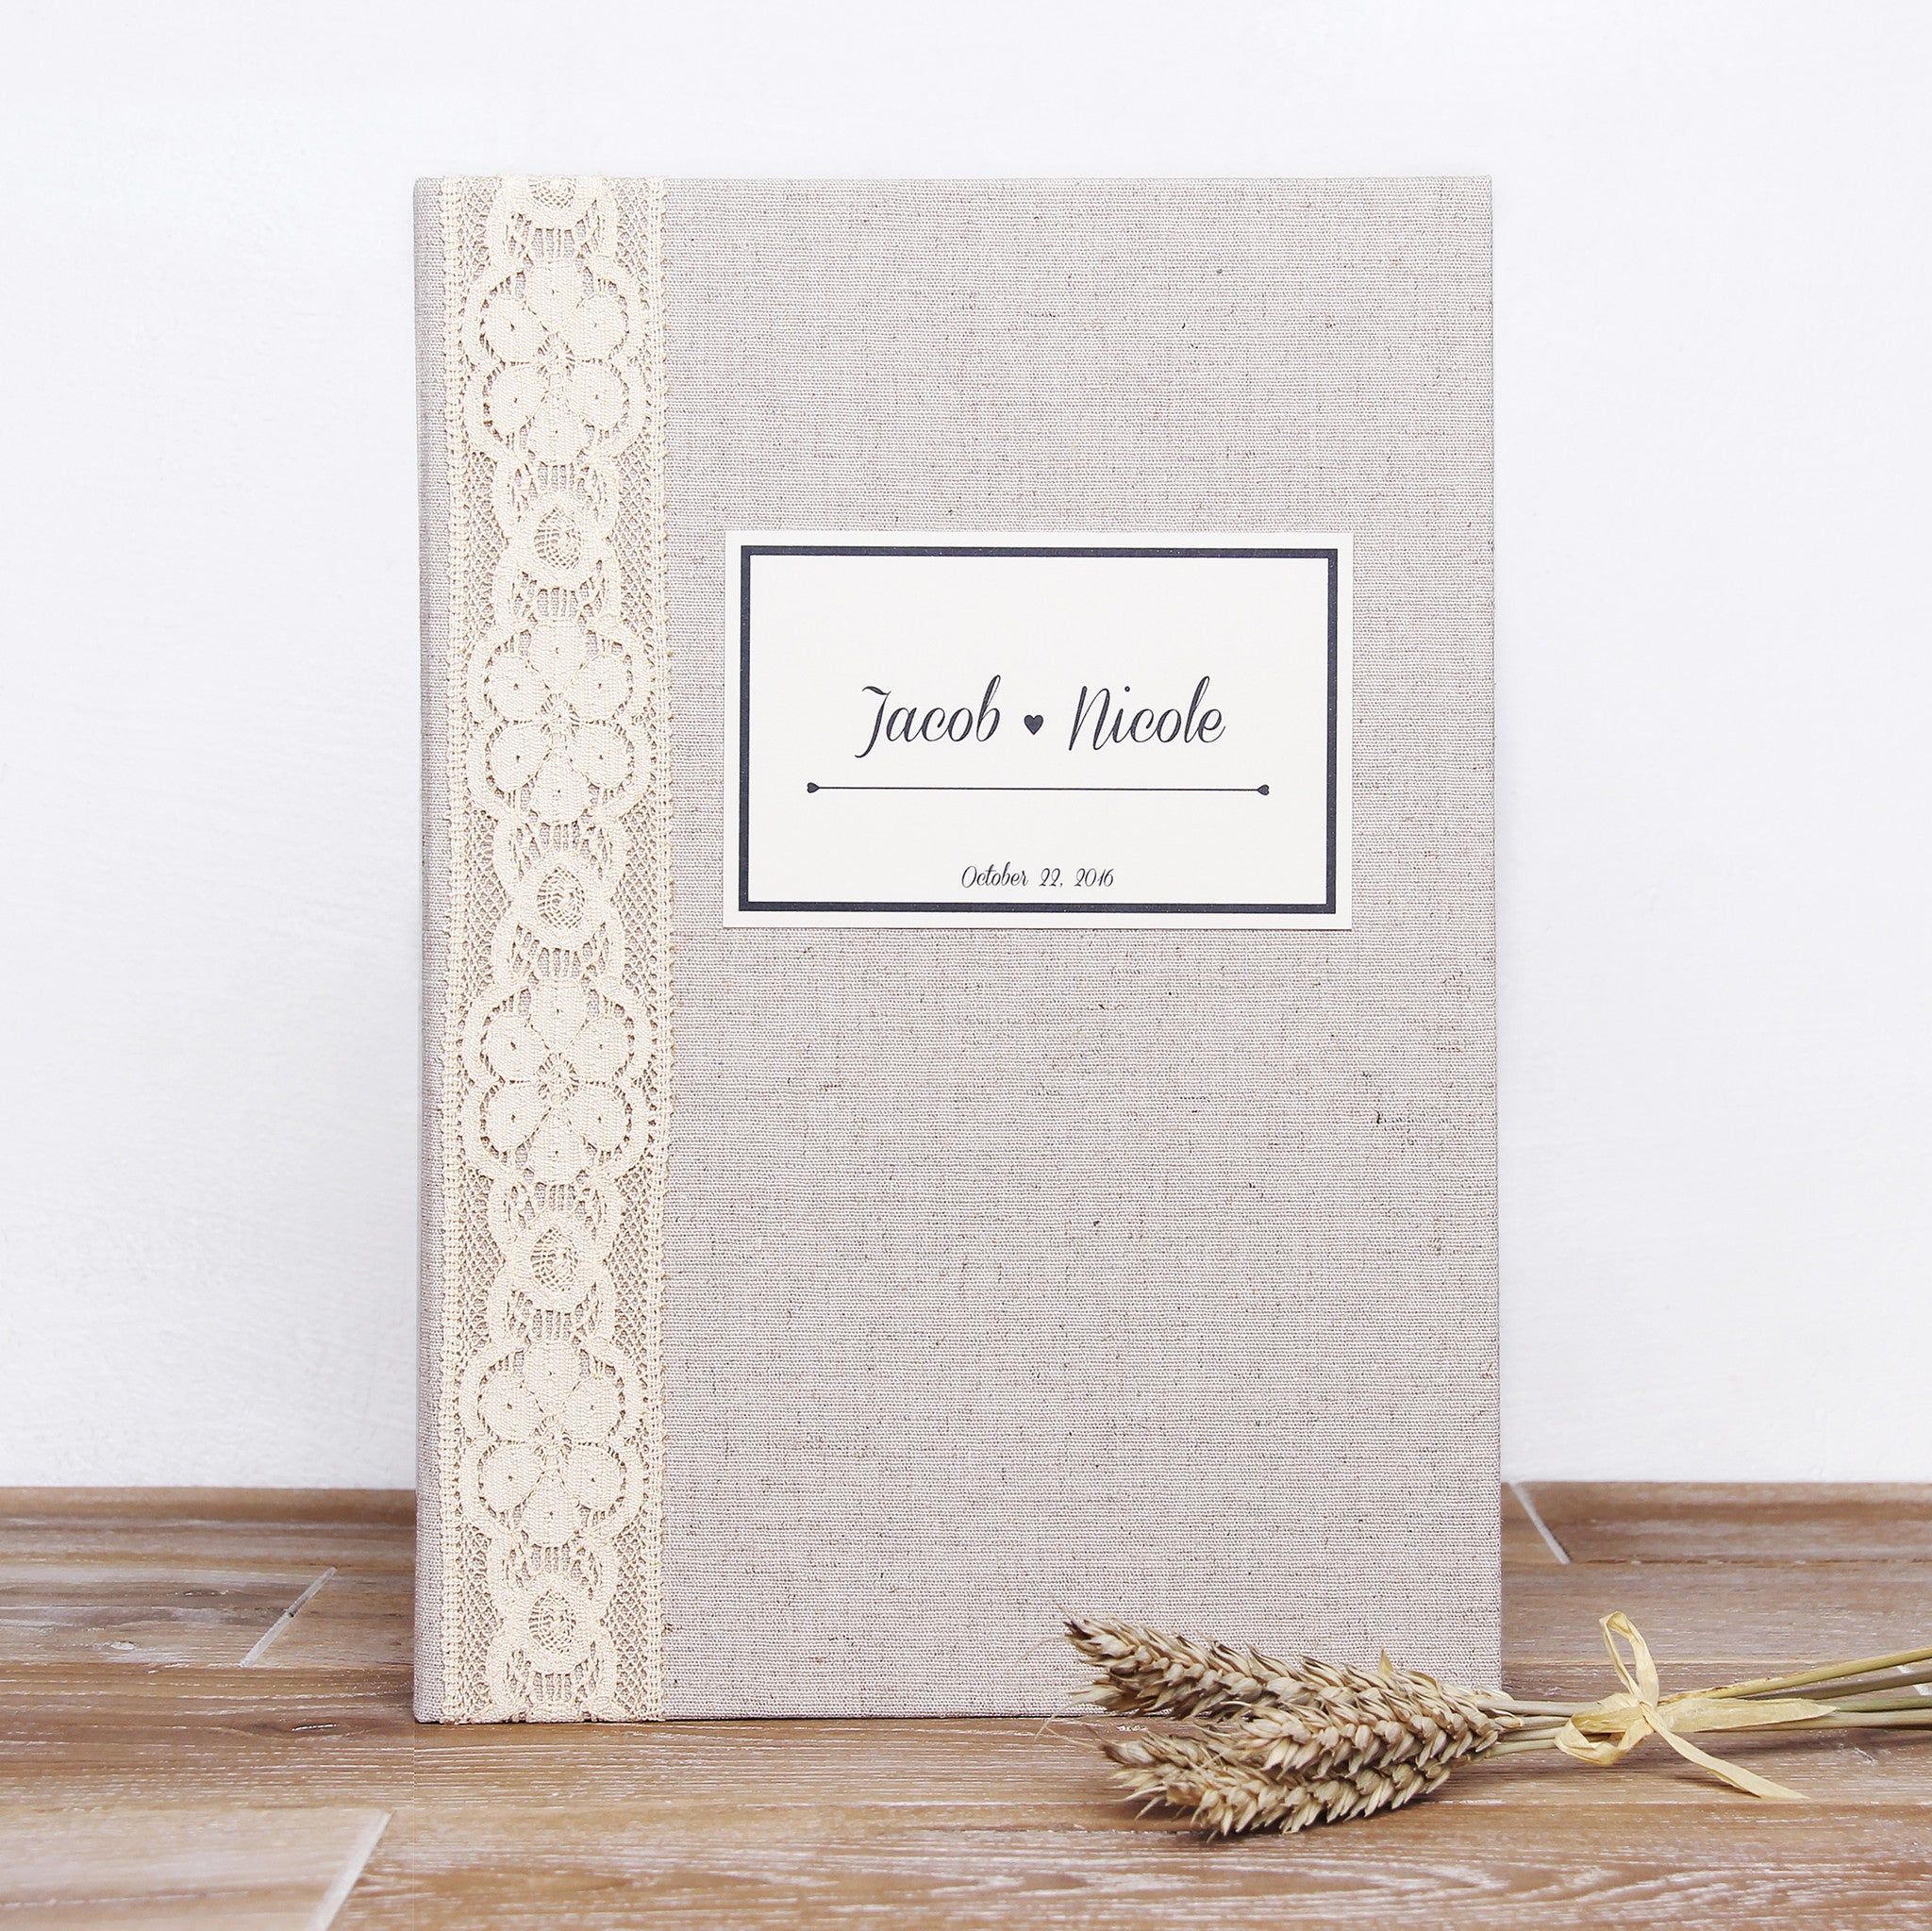 Instant Wedding Guest Book Album Instax Rustic with Ivory Lace Paper Label - By Liumy